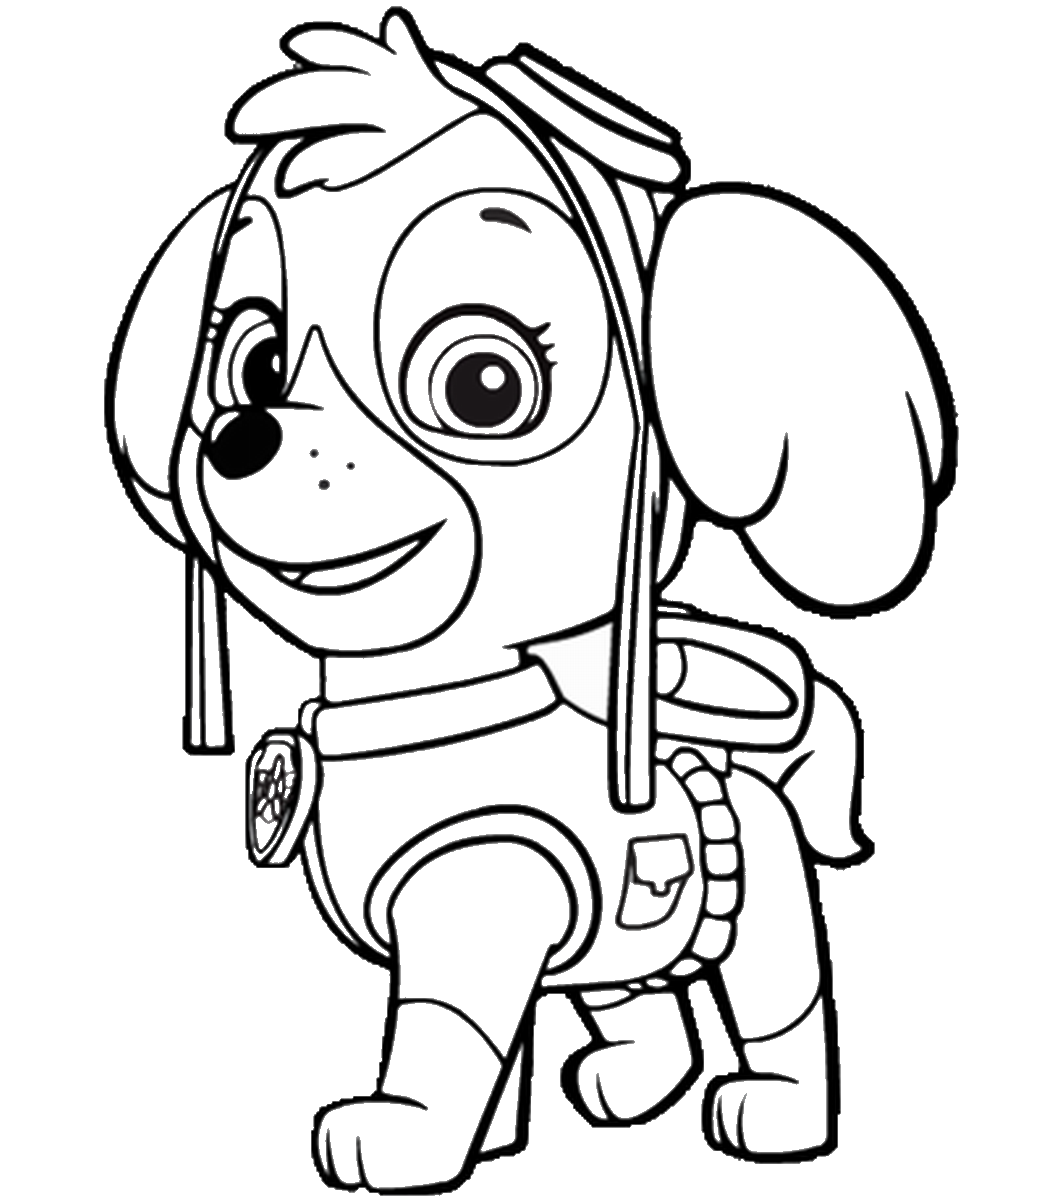 paw patrol mask coloring pages pj masks paw patrol and other kids favorite cartoon pages paw coloring mask patrol